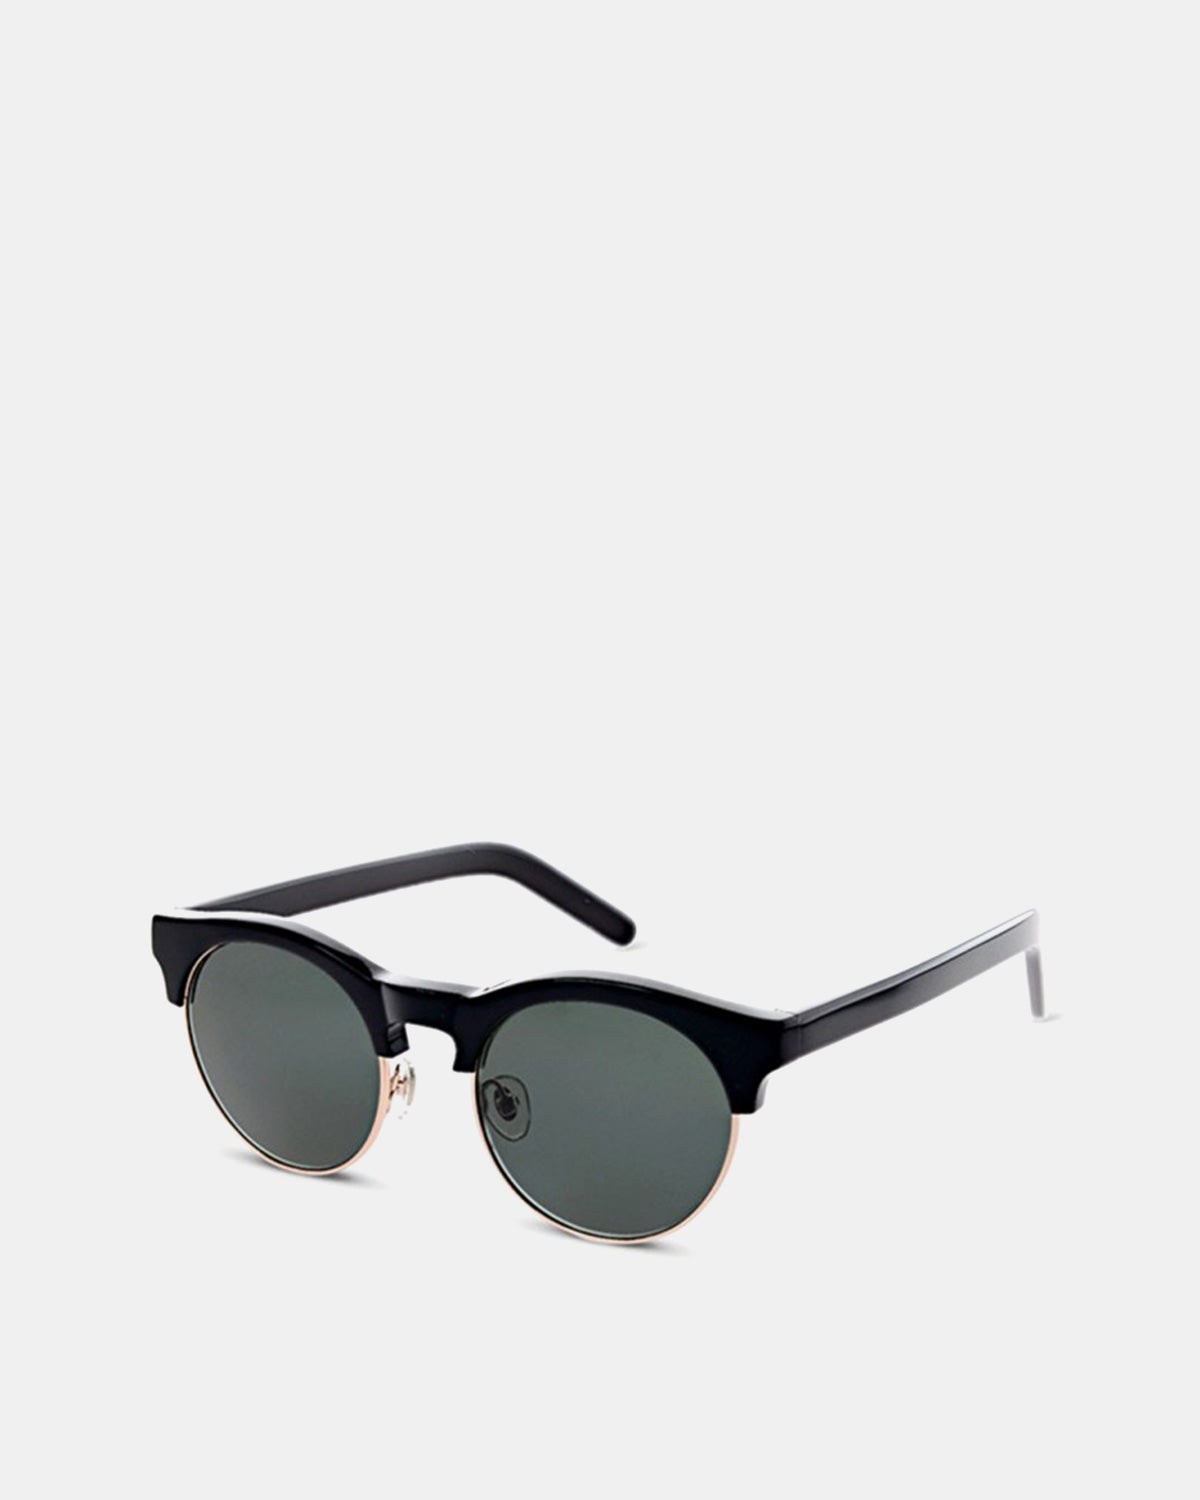 Han Kjobenhavn - Smith Sunglasses (Black)